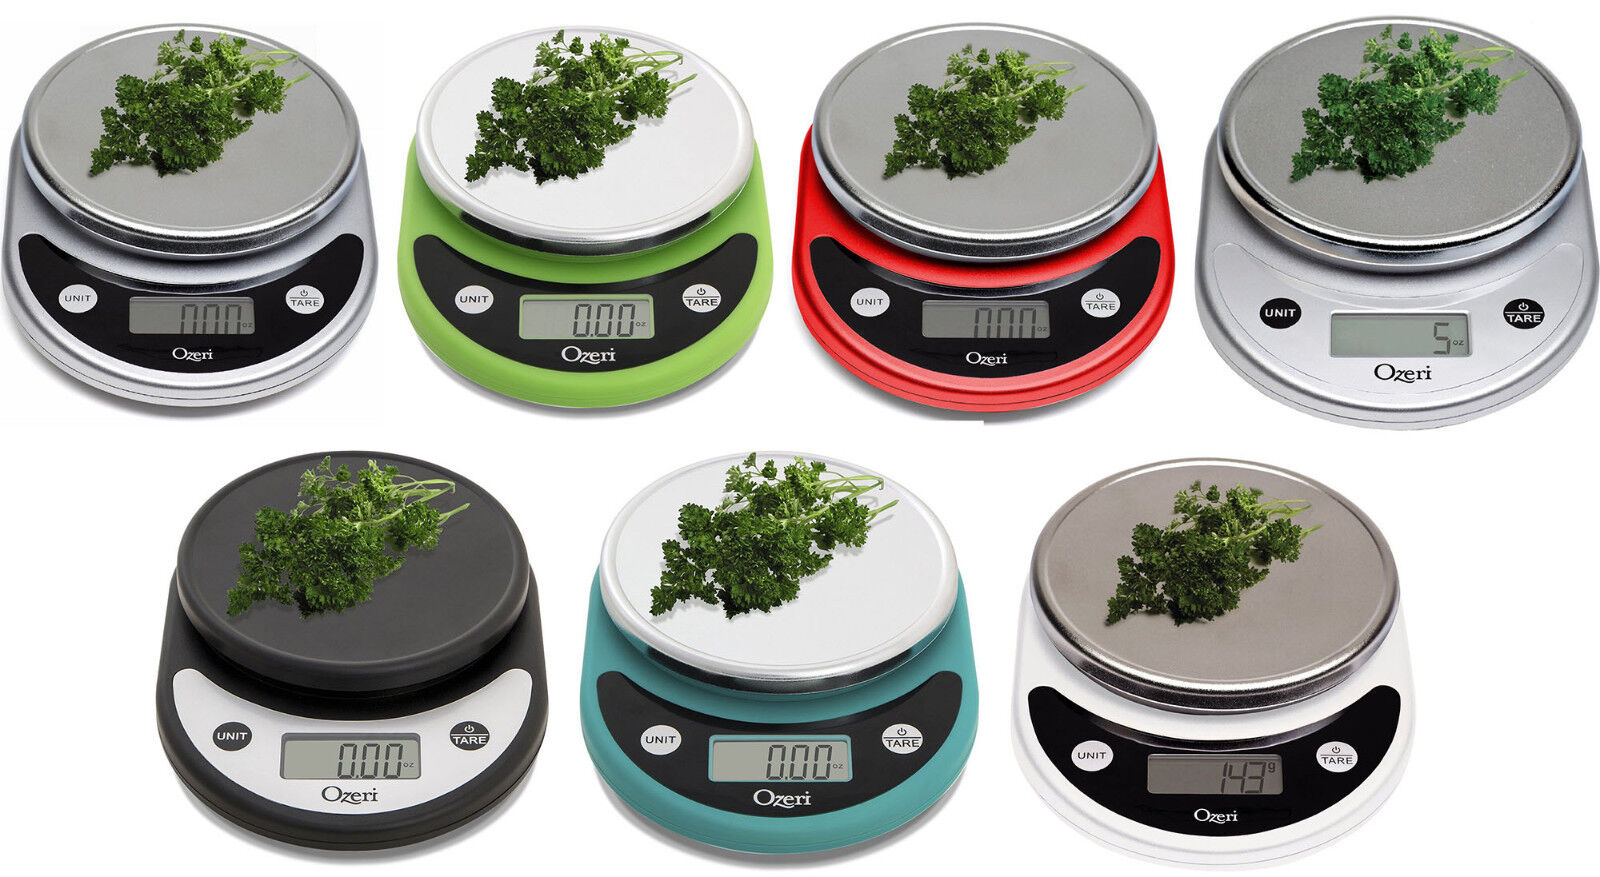 Ozeri Pronto Digital Multifunction Kitchen and Food Scales,